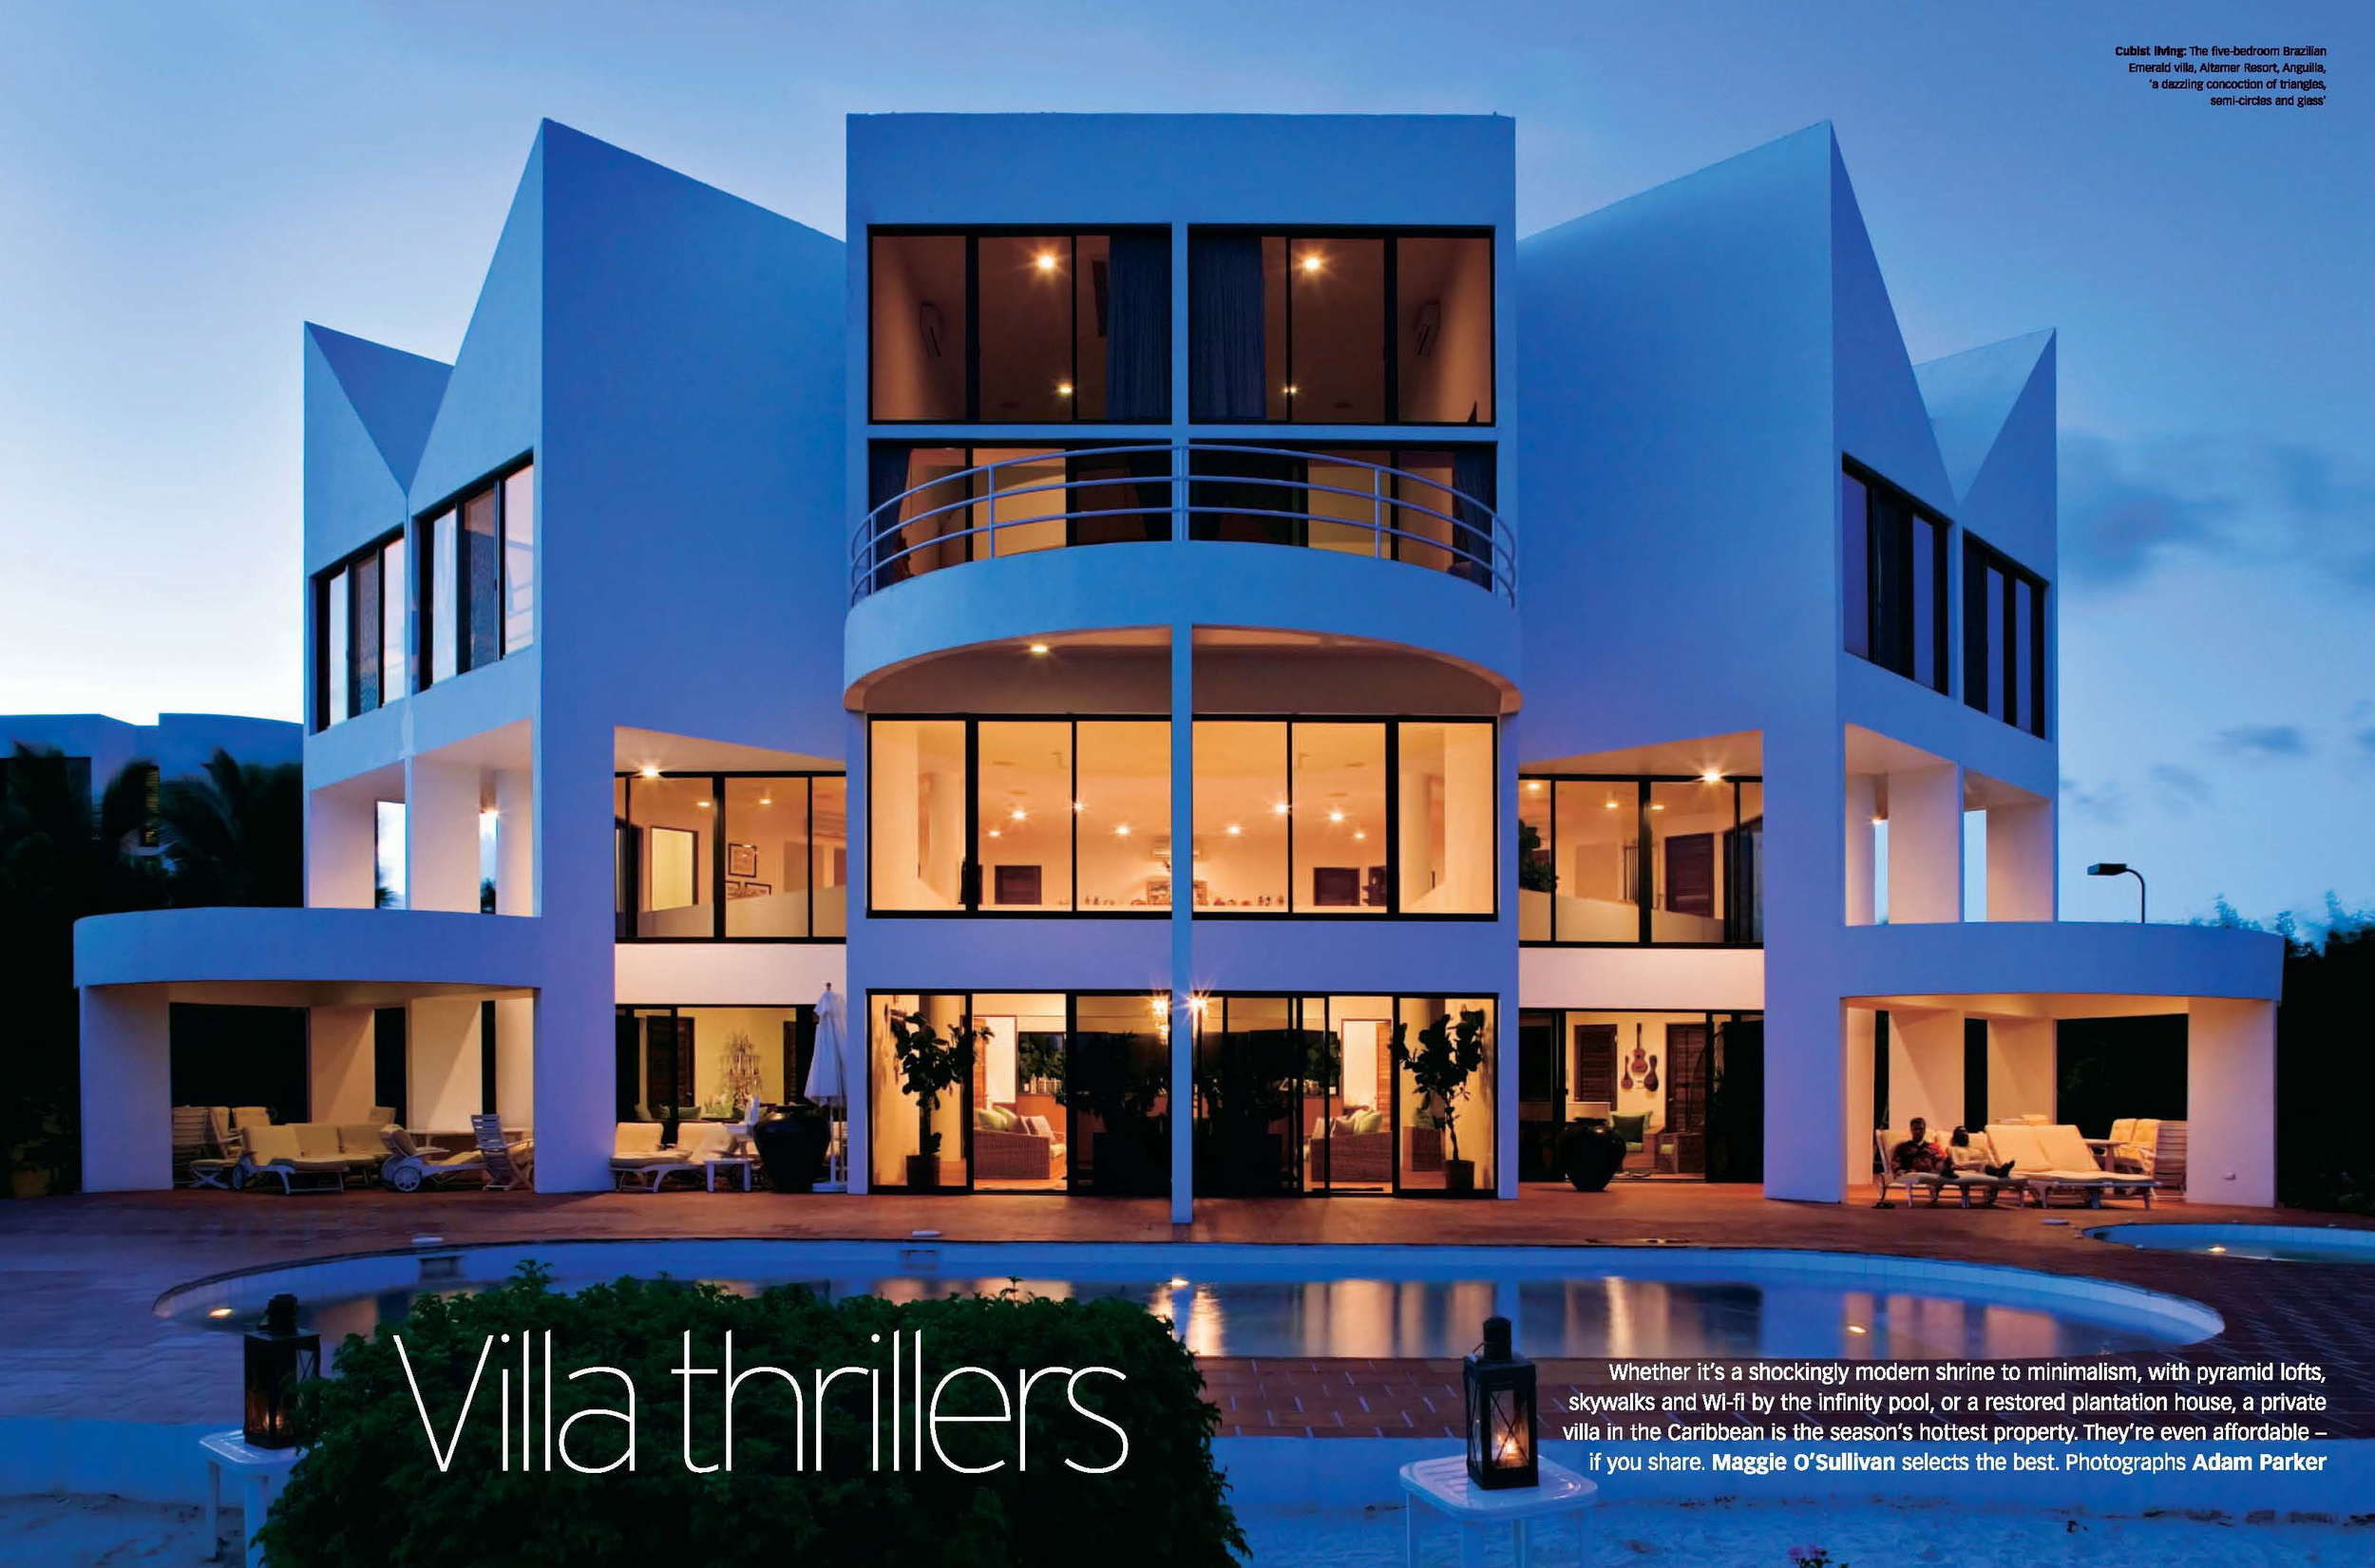 Emerarld Villa, Altarner Resort, Anguilla - click to enlarge